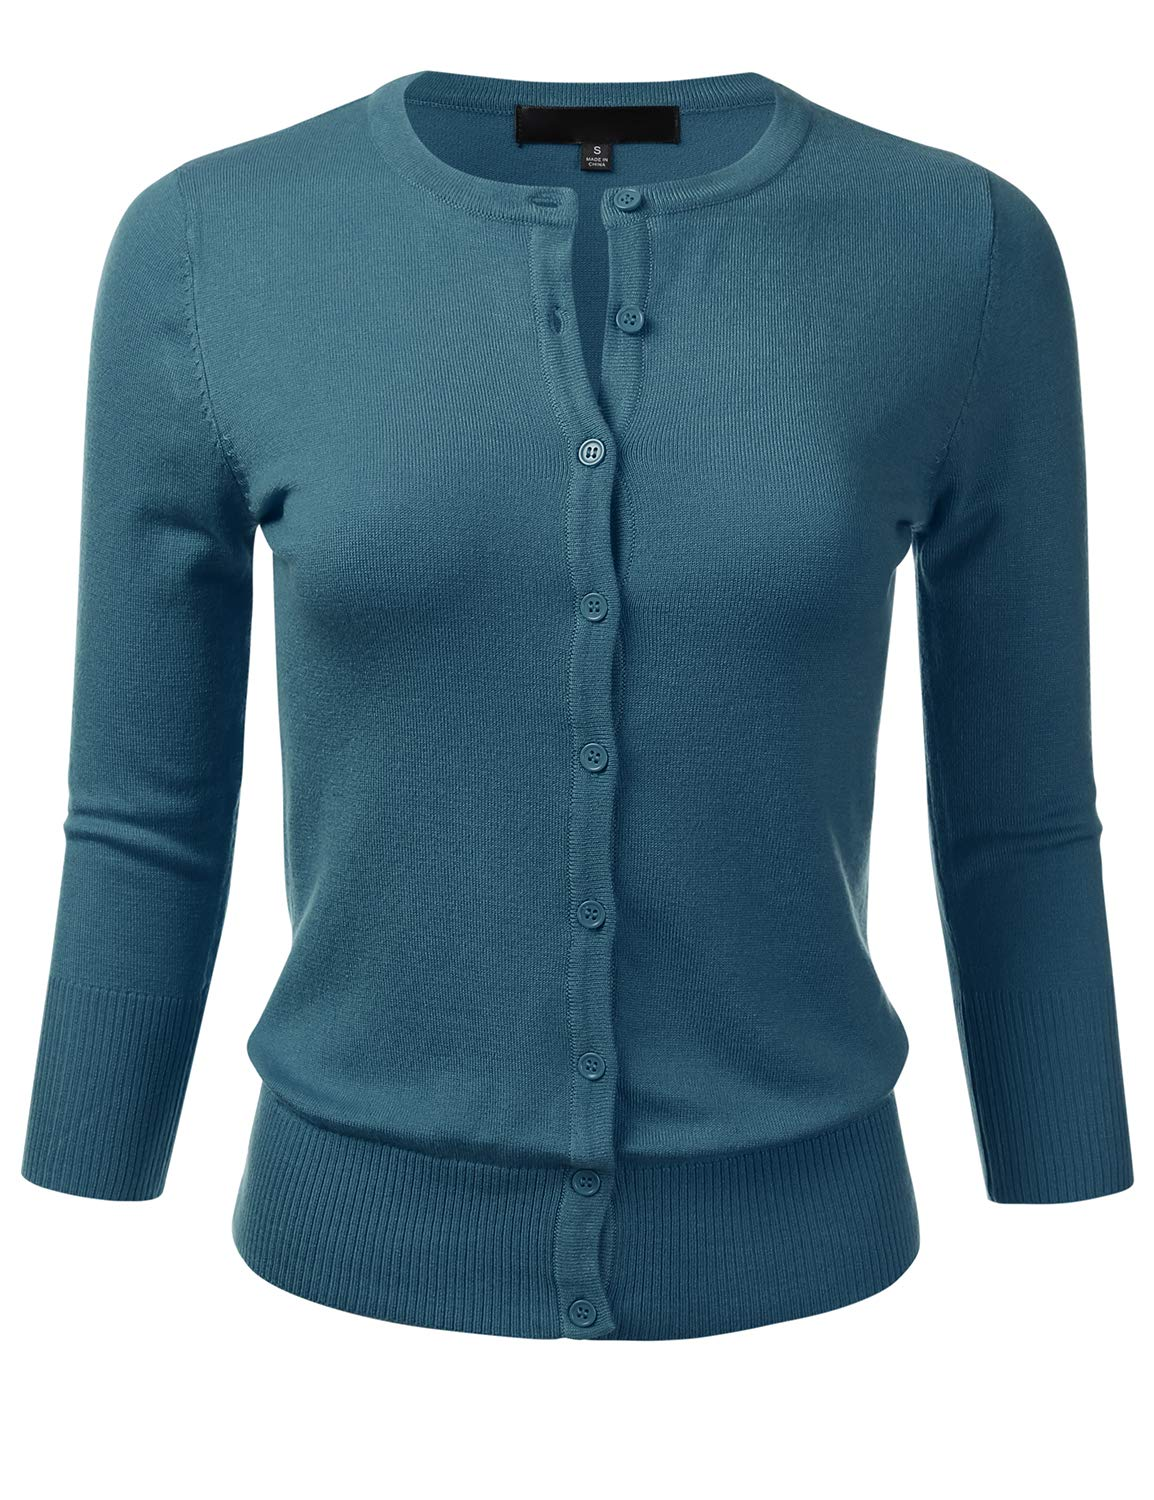 aa4a535f84 FLORIA Women s Button Down 3 4 Sleeve Crew Neck Knit Cardigan Sweater  TEALBLUE L